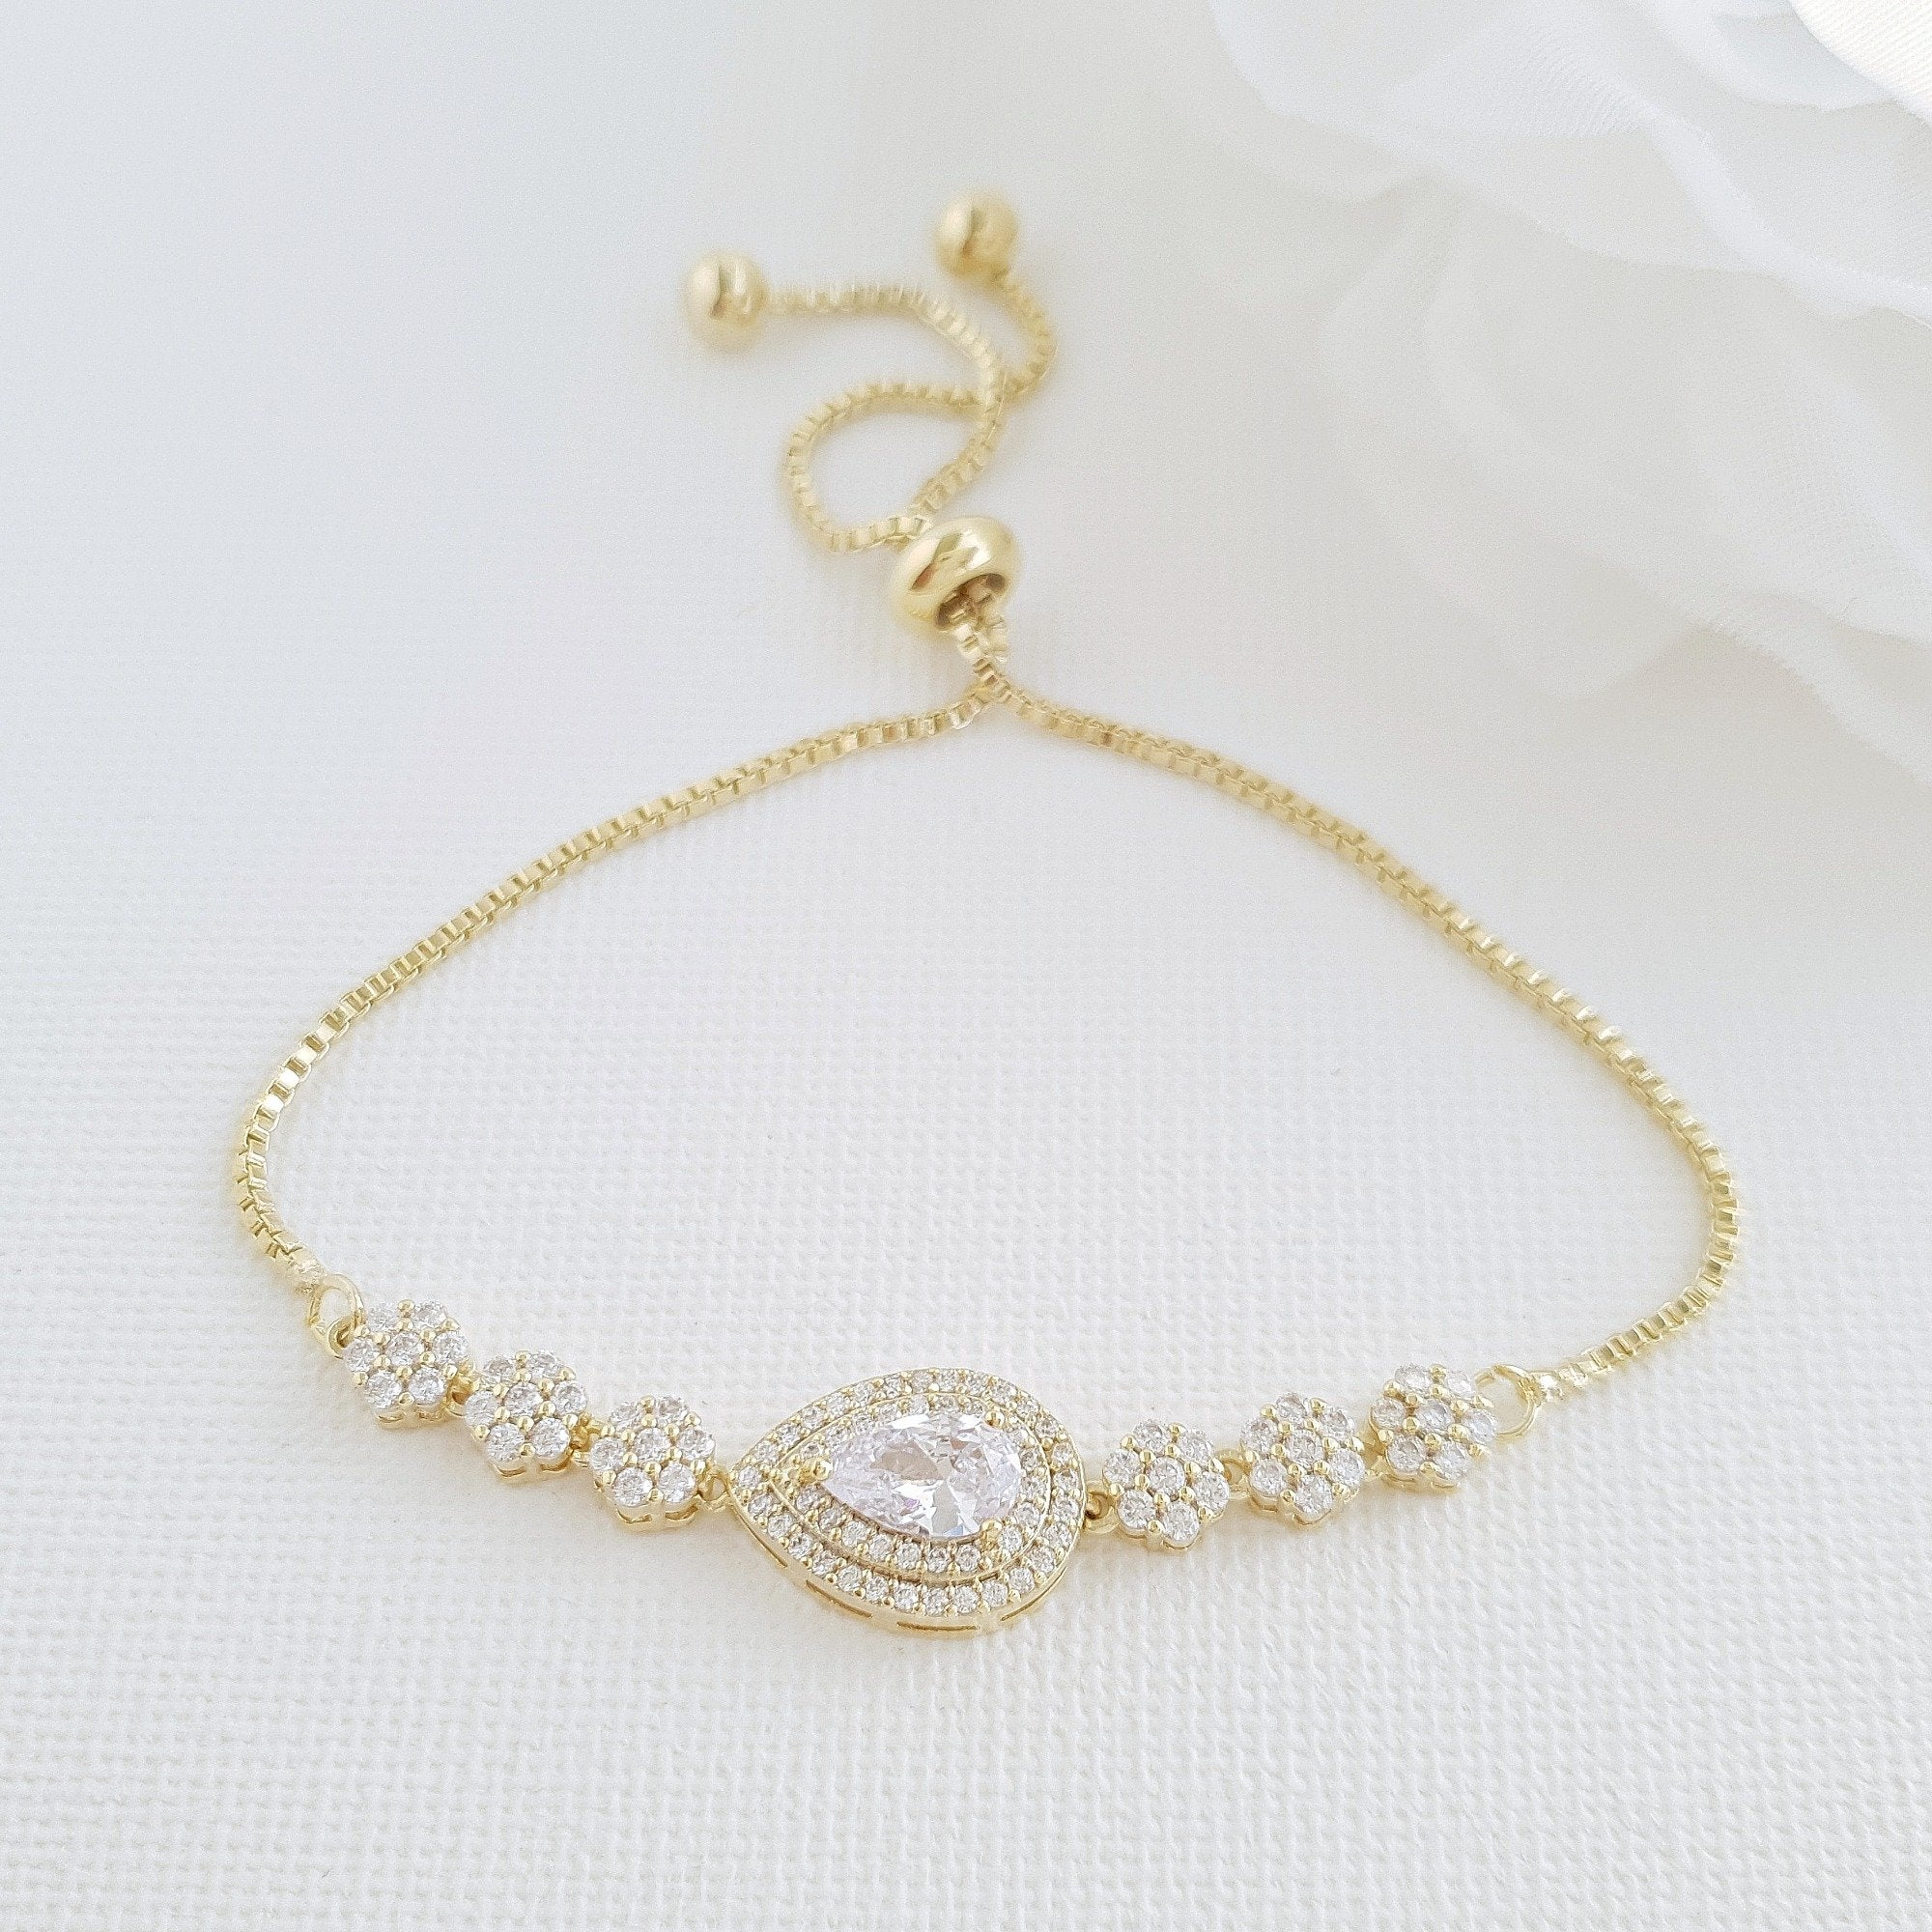 Gold Slider Clasp Wedding Bracelet- Joni - PoetryDesigns